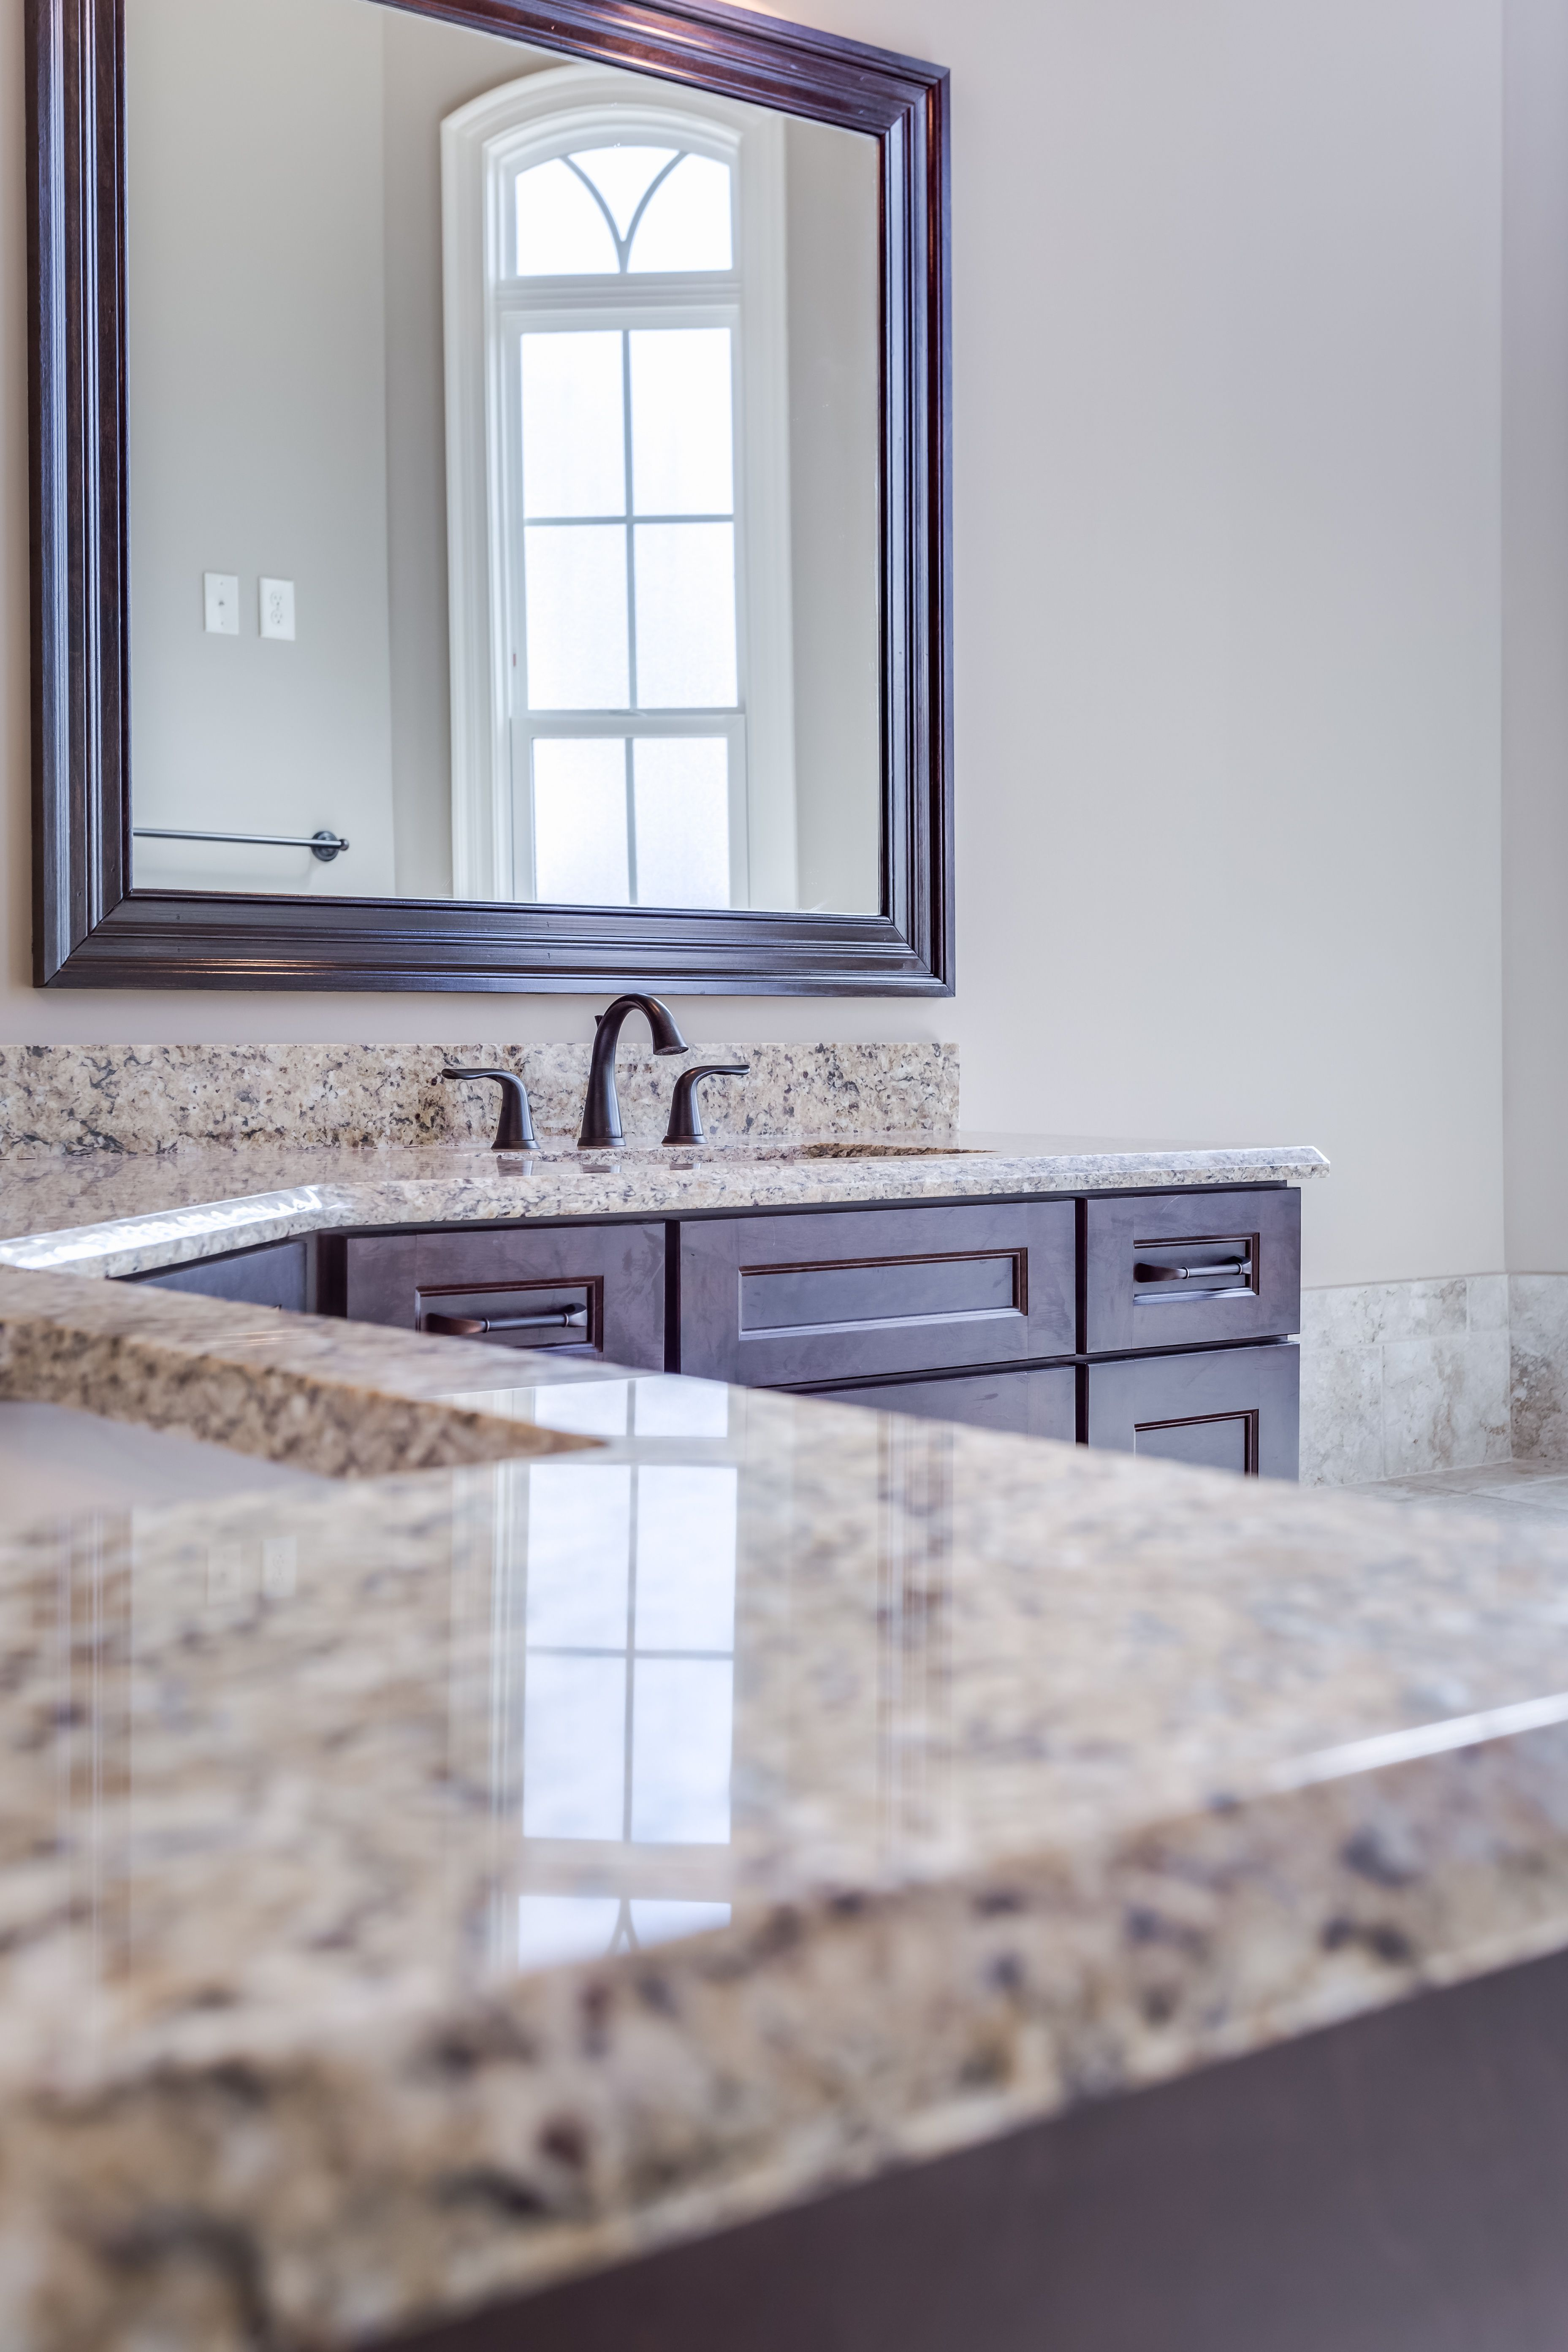 Visualize Cabinet Countertop Floor Tile And Wall Options In Different Bathroom Settings Use This Quick Tool To Ideal Bathrooms Beautiful Bathrooms Bathroom